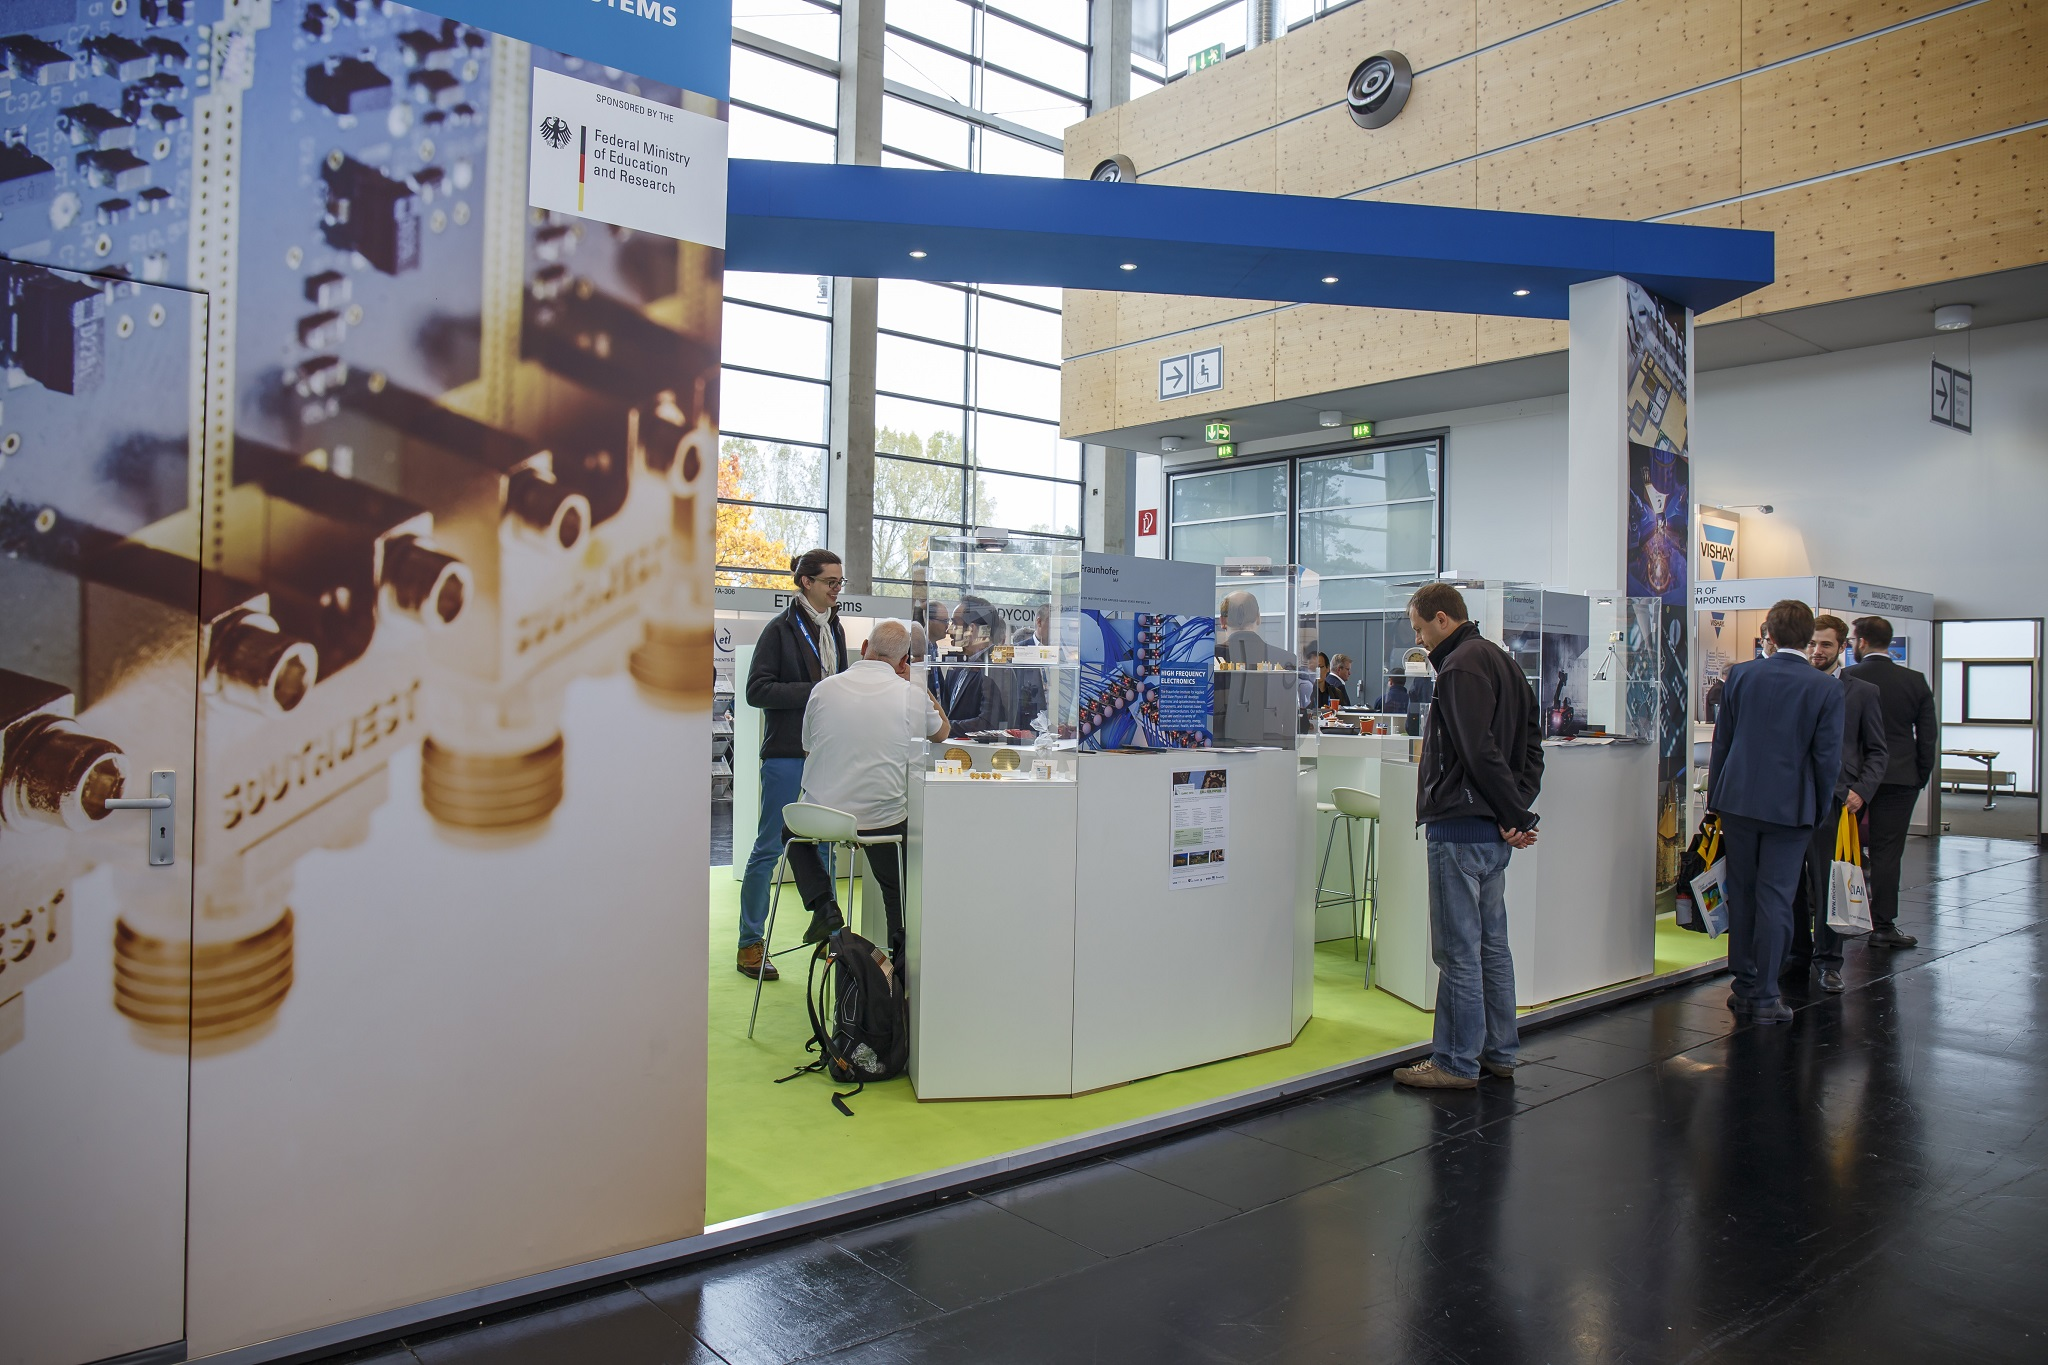 The Fraunhofer IAF at the EUMW 2017